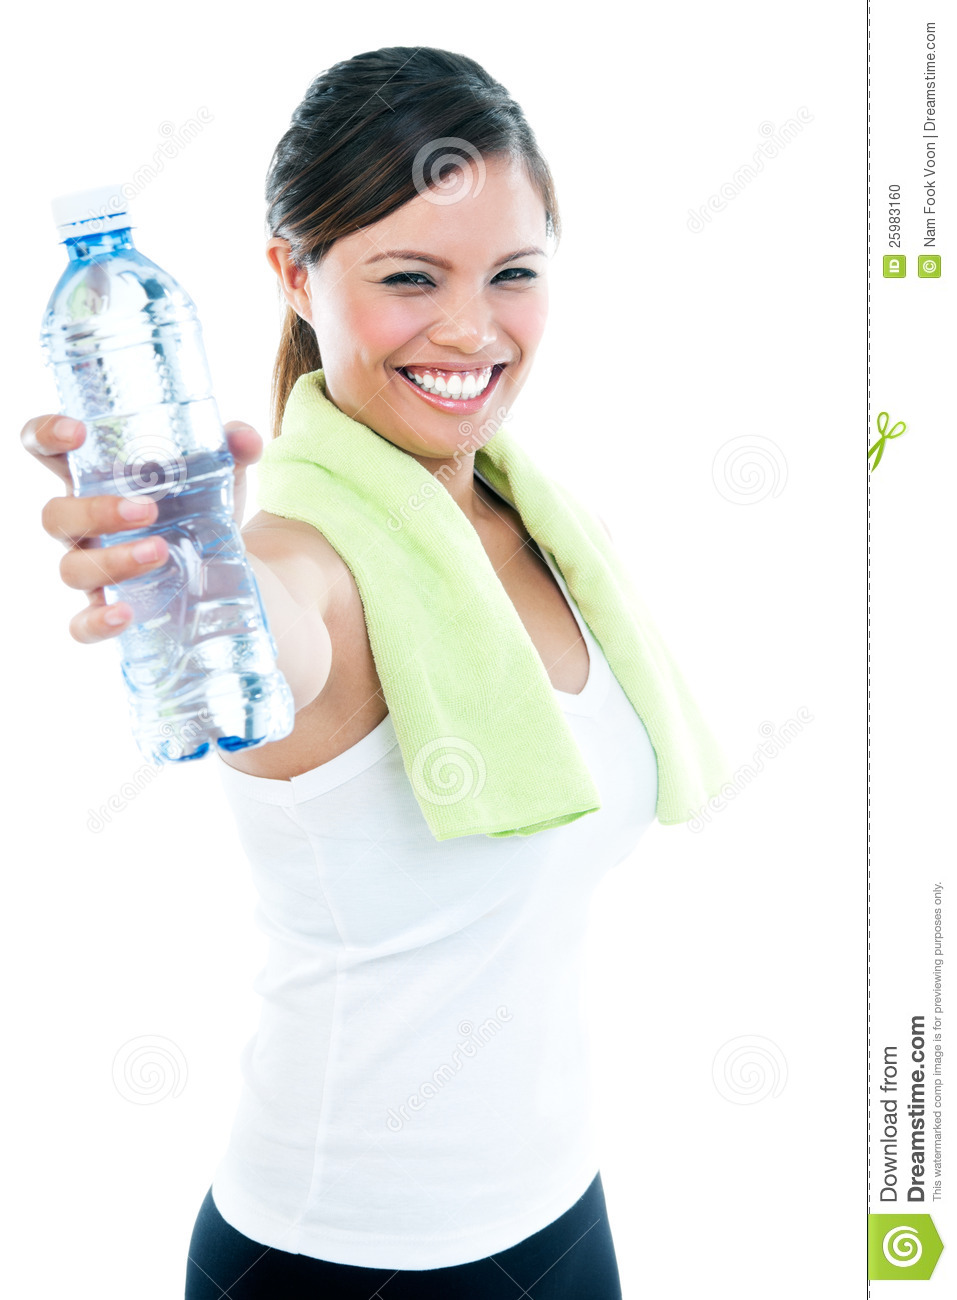 Young Woman Holding Water Bottle Stock Photo - Image: 25983160